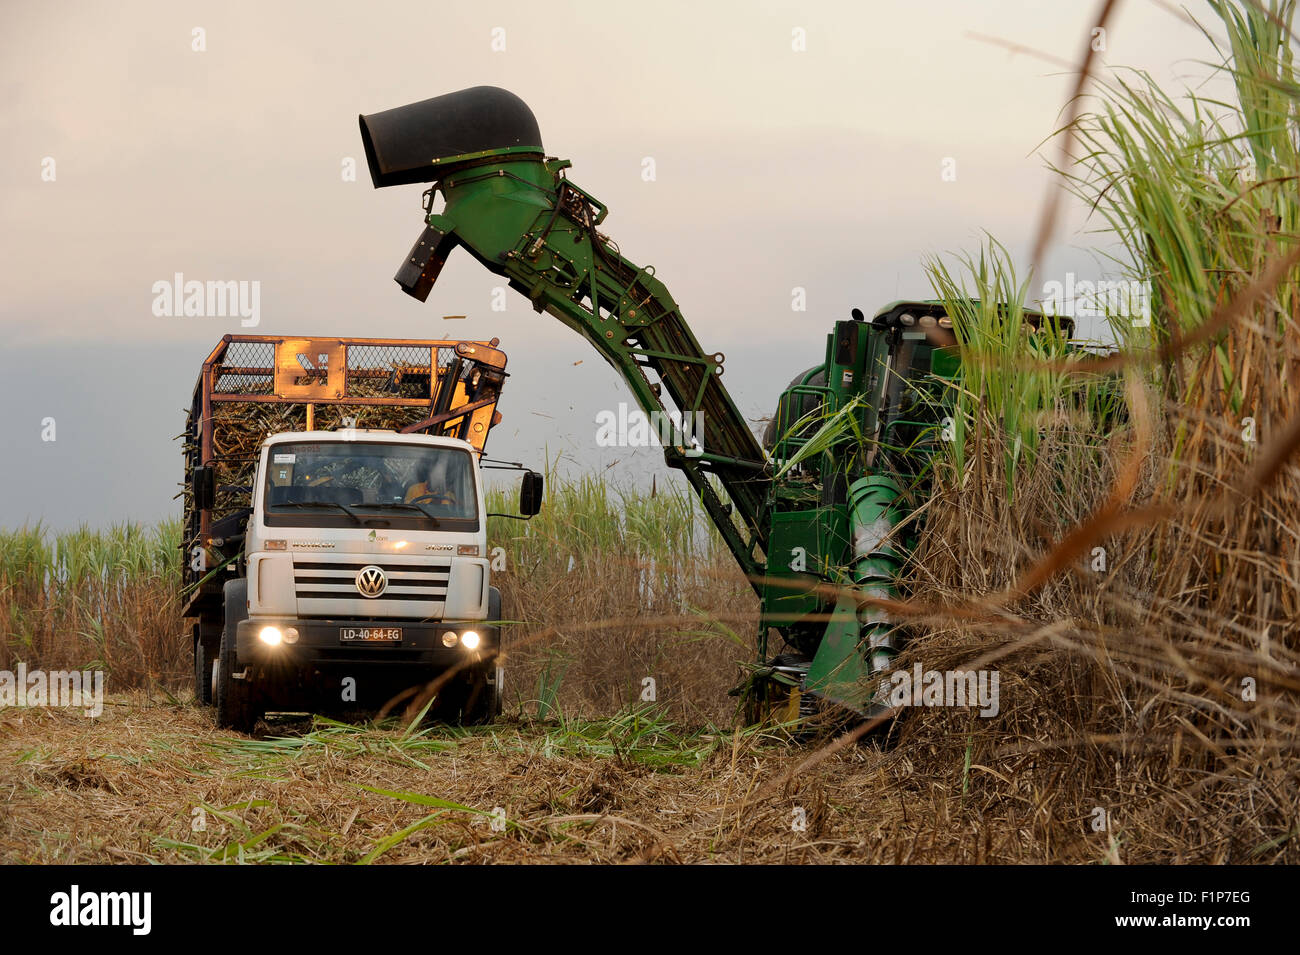 ANGOLA Malange , PAC Pòlo Agroindustrial de Capanda, Biocom Project, joint venture of Brazil company Odebrecht and Stock Photo